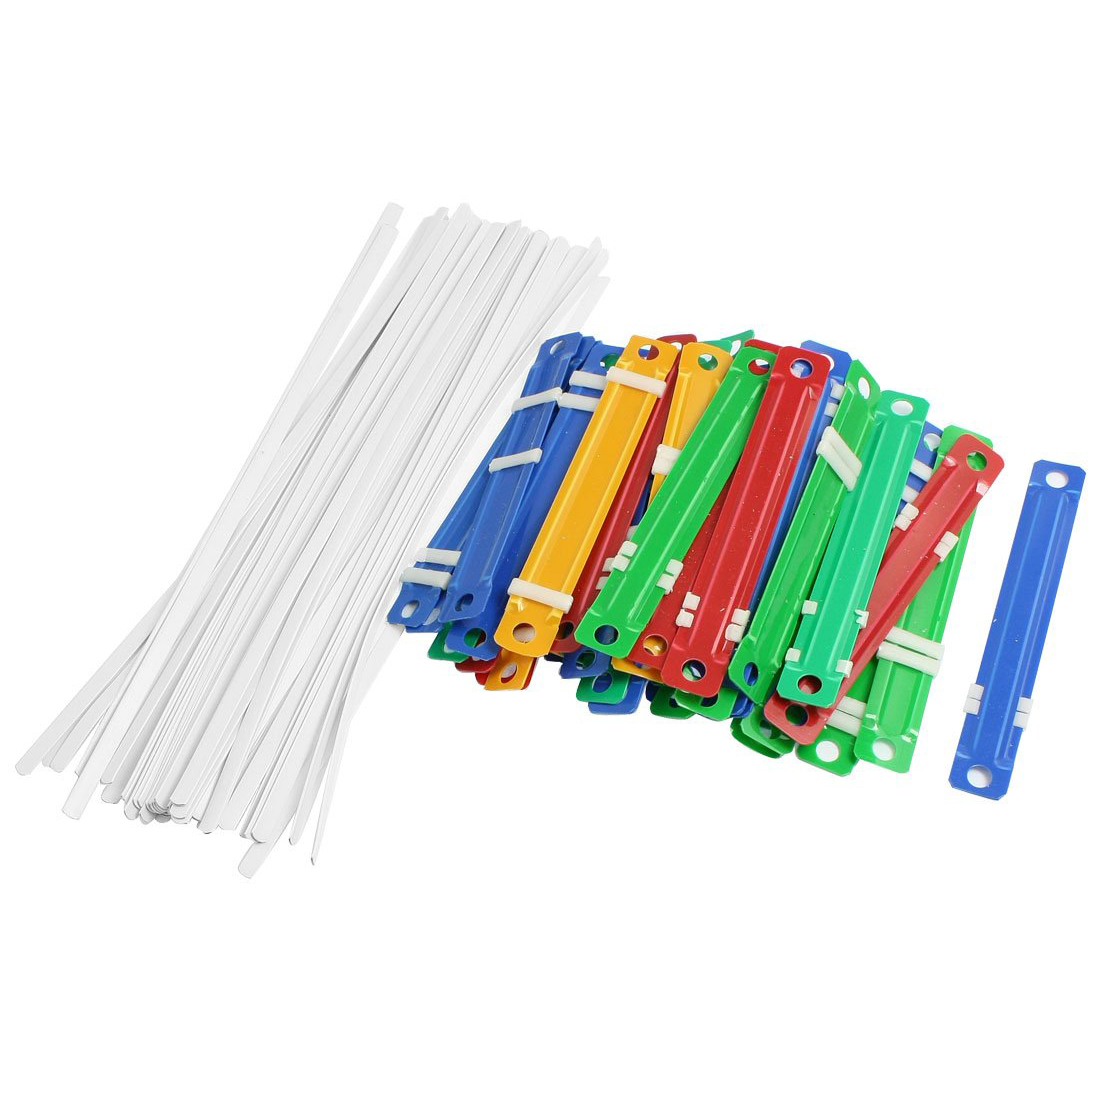 PPYY NEW - 50 Pcs Office School Colorful Plastic Binding Two-Piece Document Paper Fasteners